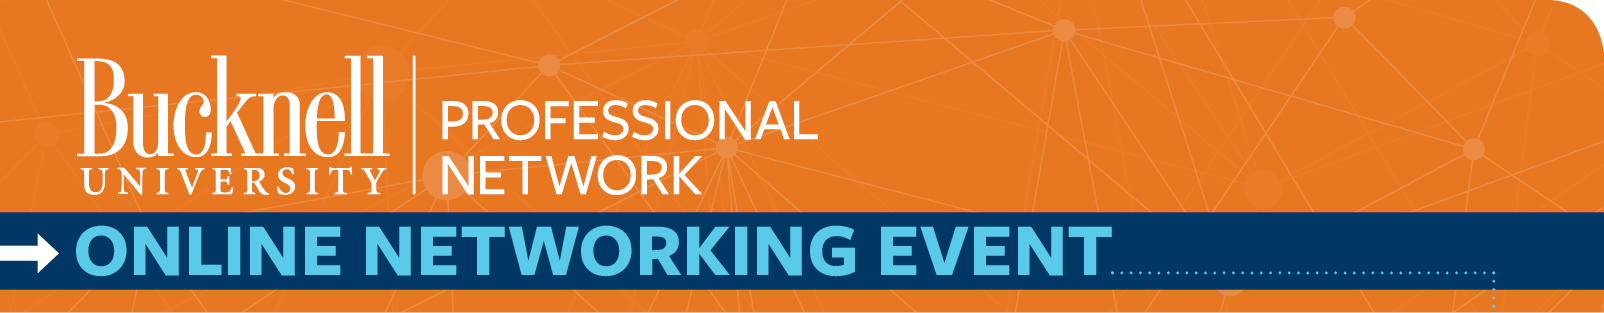 Bucknell December Online Networking